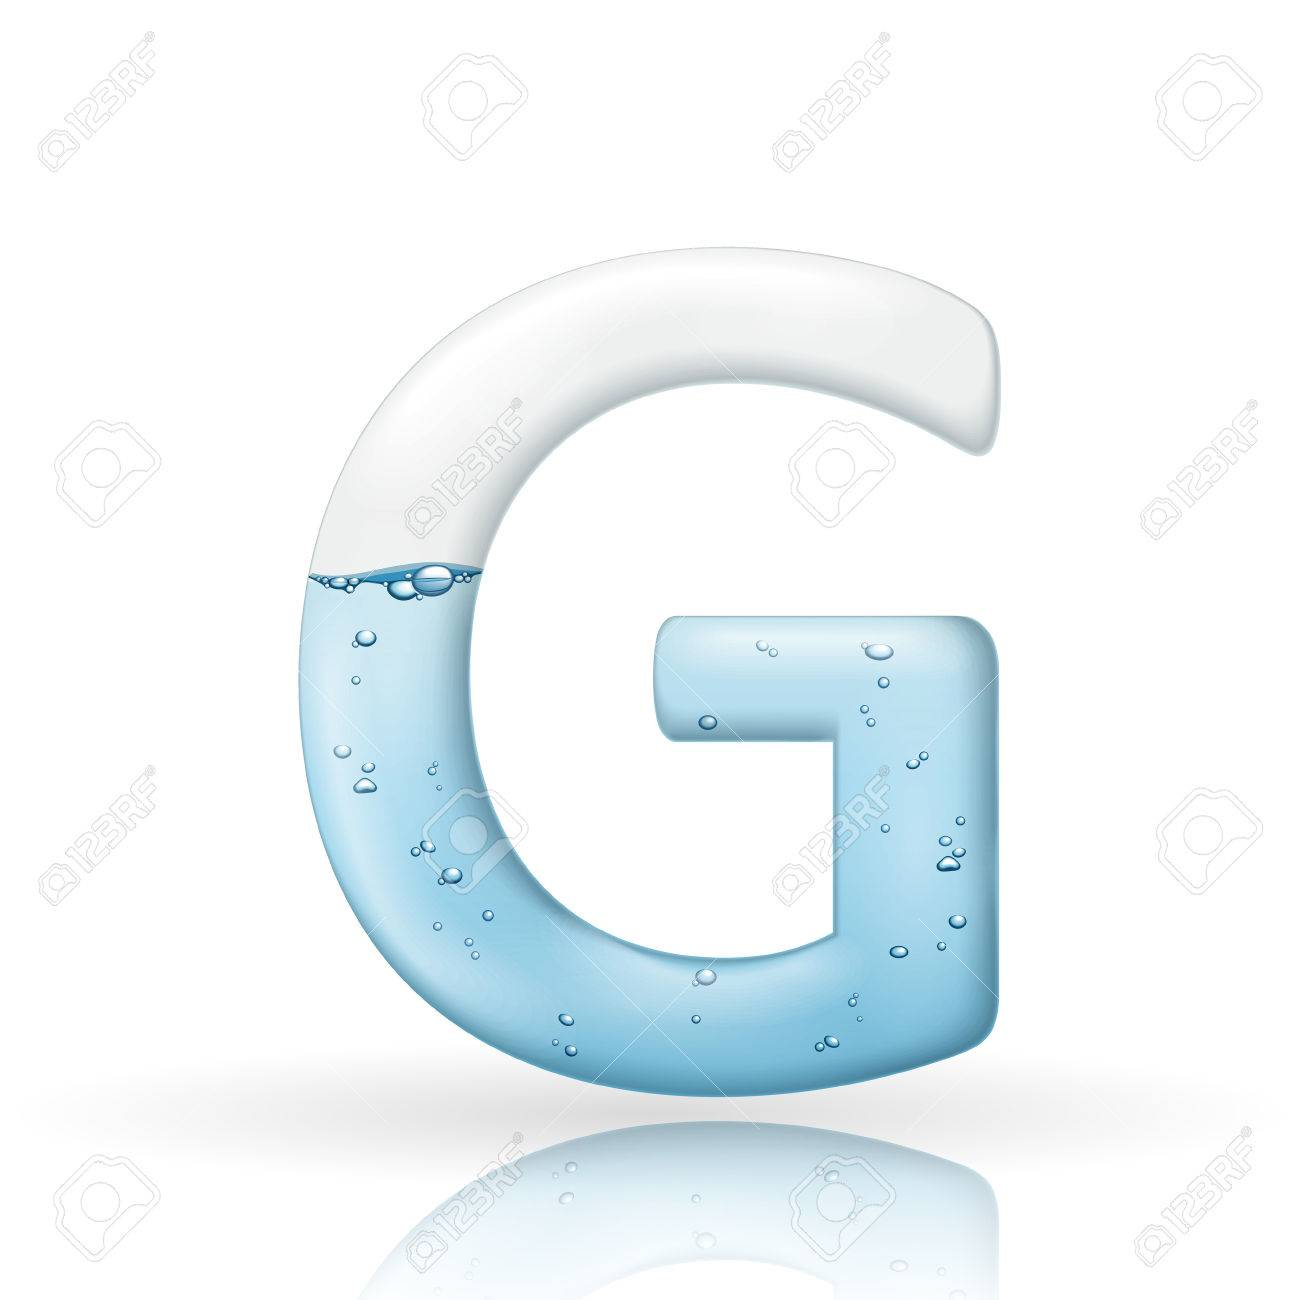 3d clean water letter g isolated on white background royalty free 3d clean water letter g isolated on white background stock vector 38534151 thecheapjerseys Images